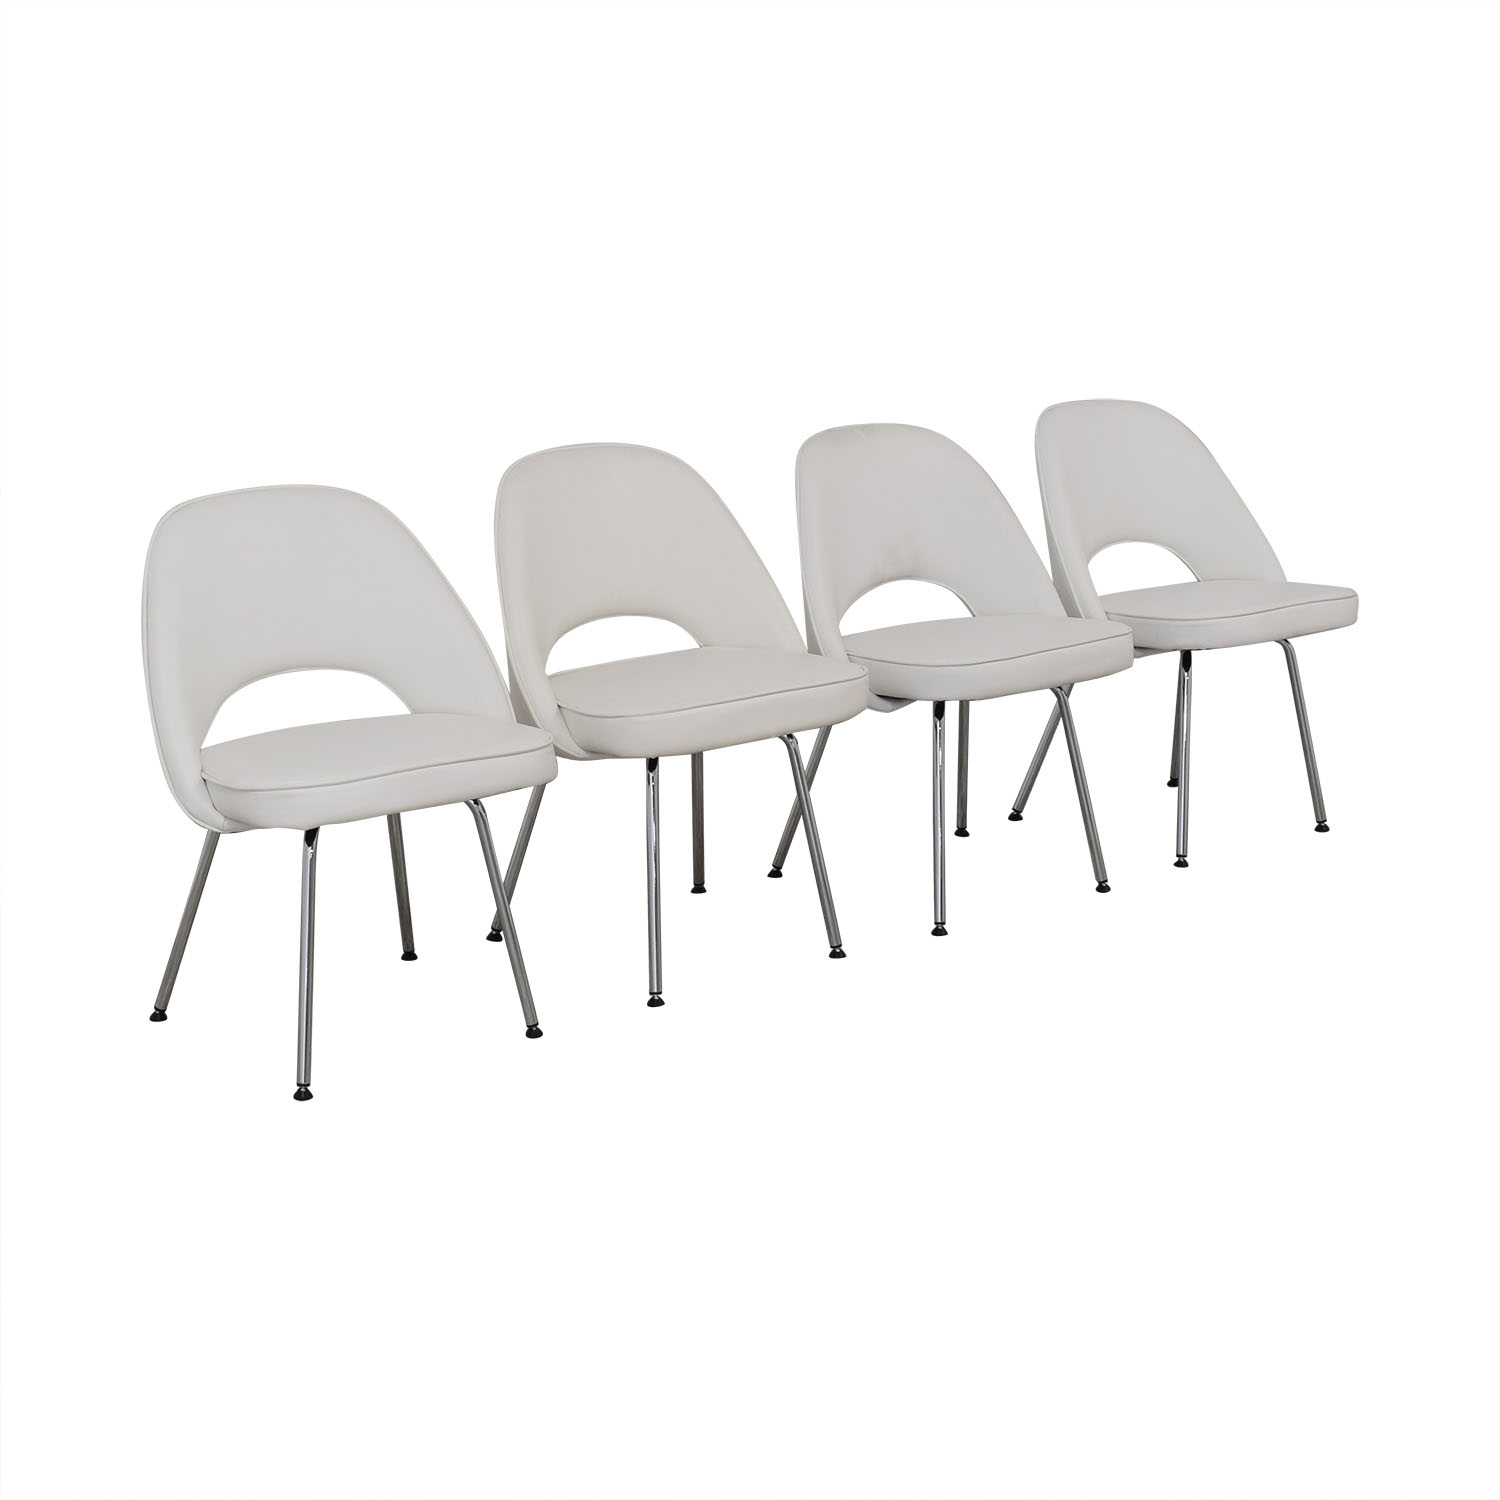 Control Brand Control Brand Leather Dining Chairs nj